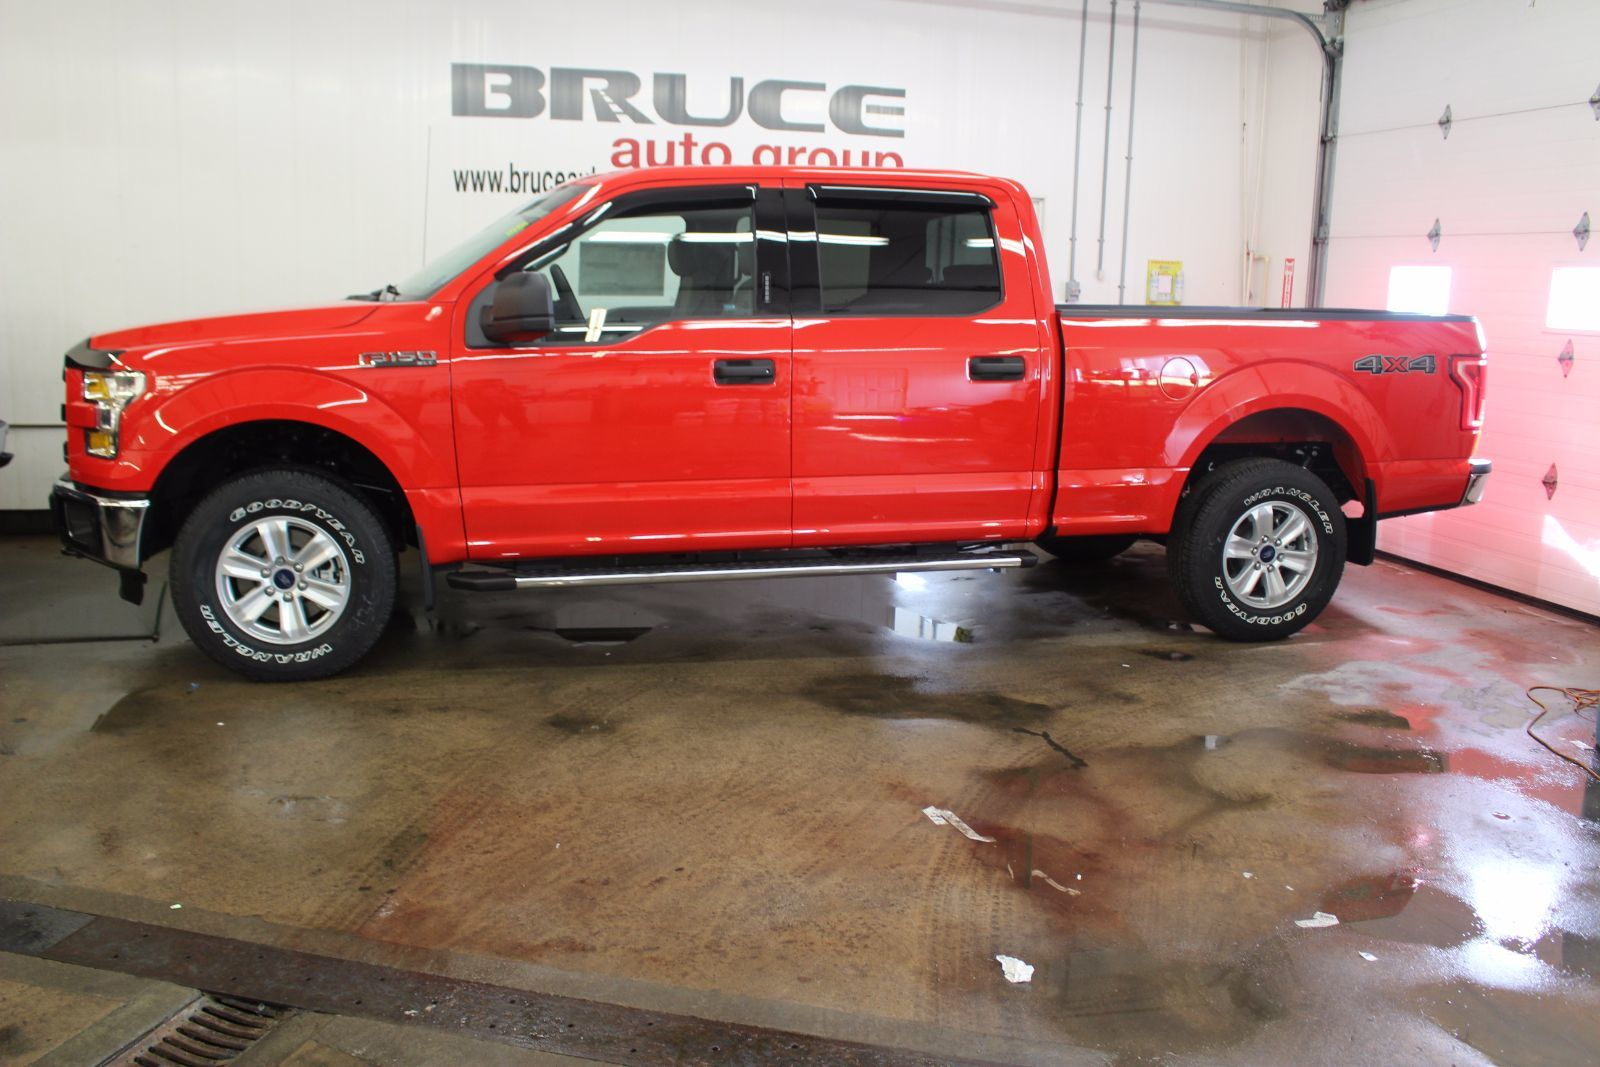 new 2016 ford f 150 xlt 5 0l 8 cyl automatic 4x4 supercrew for sale in middleton bruce ford in. Black Bedroom Furniture Sets. Home Design Ideas